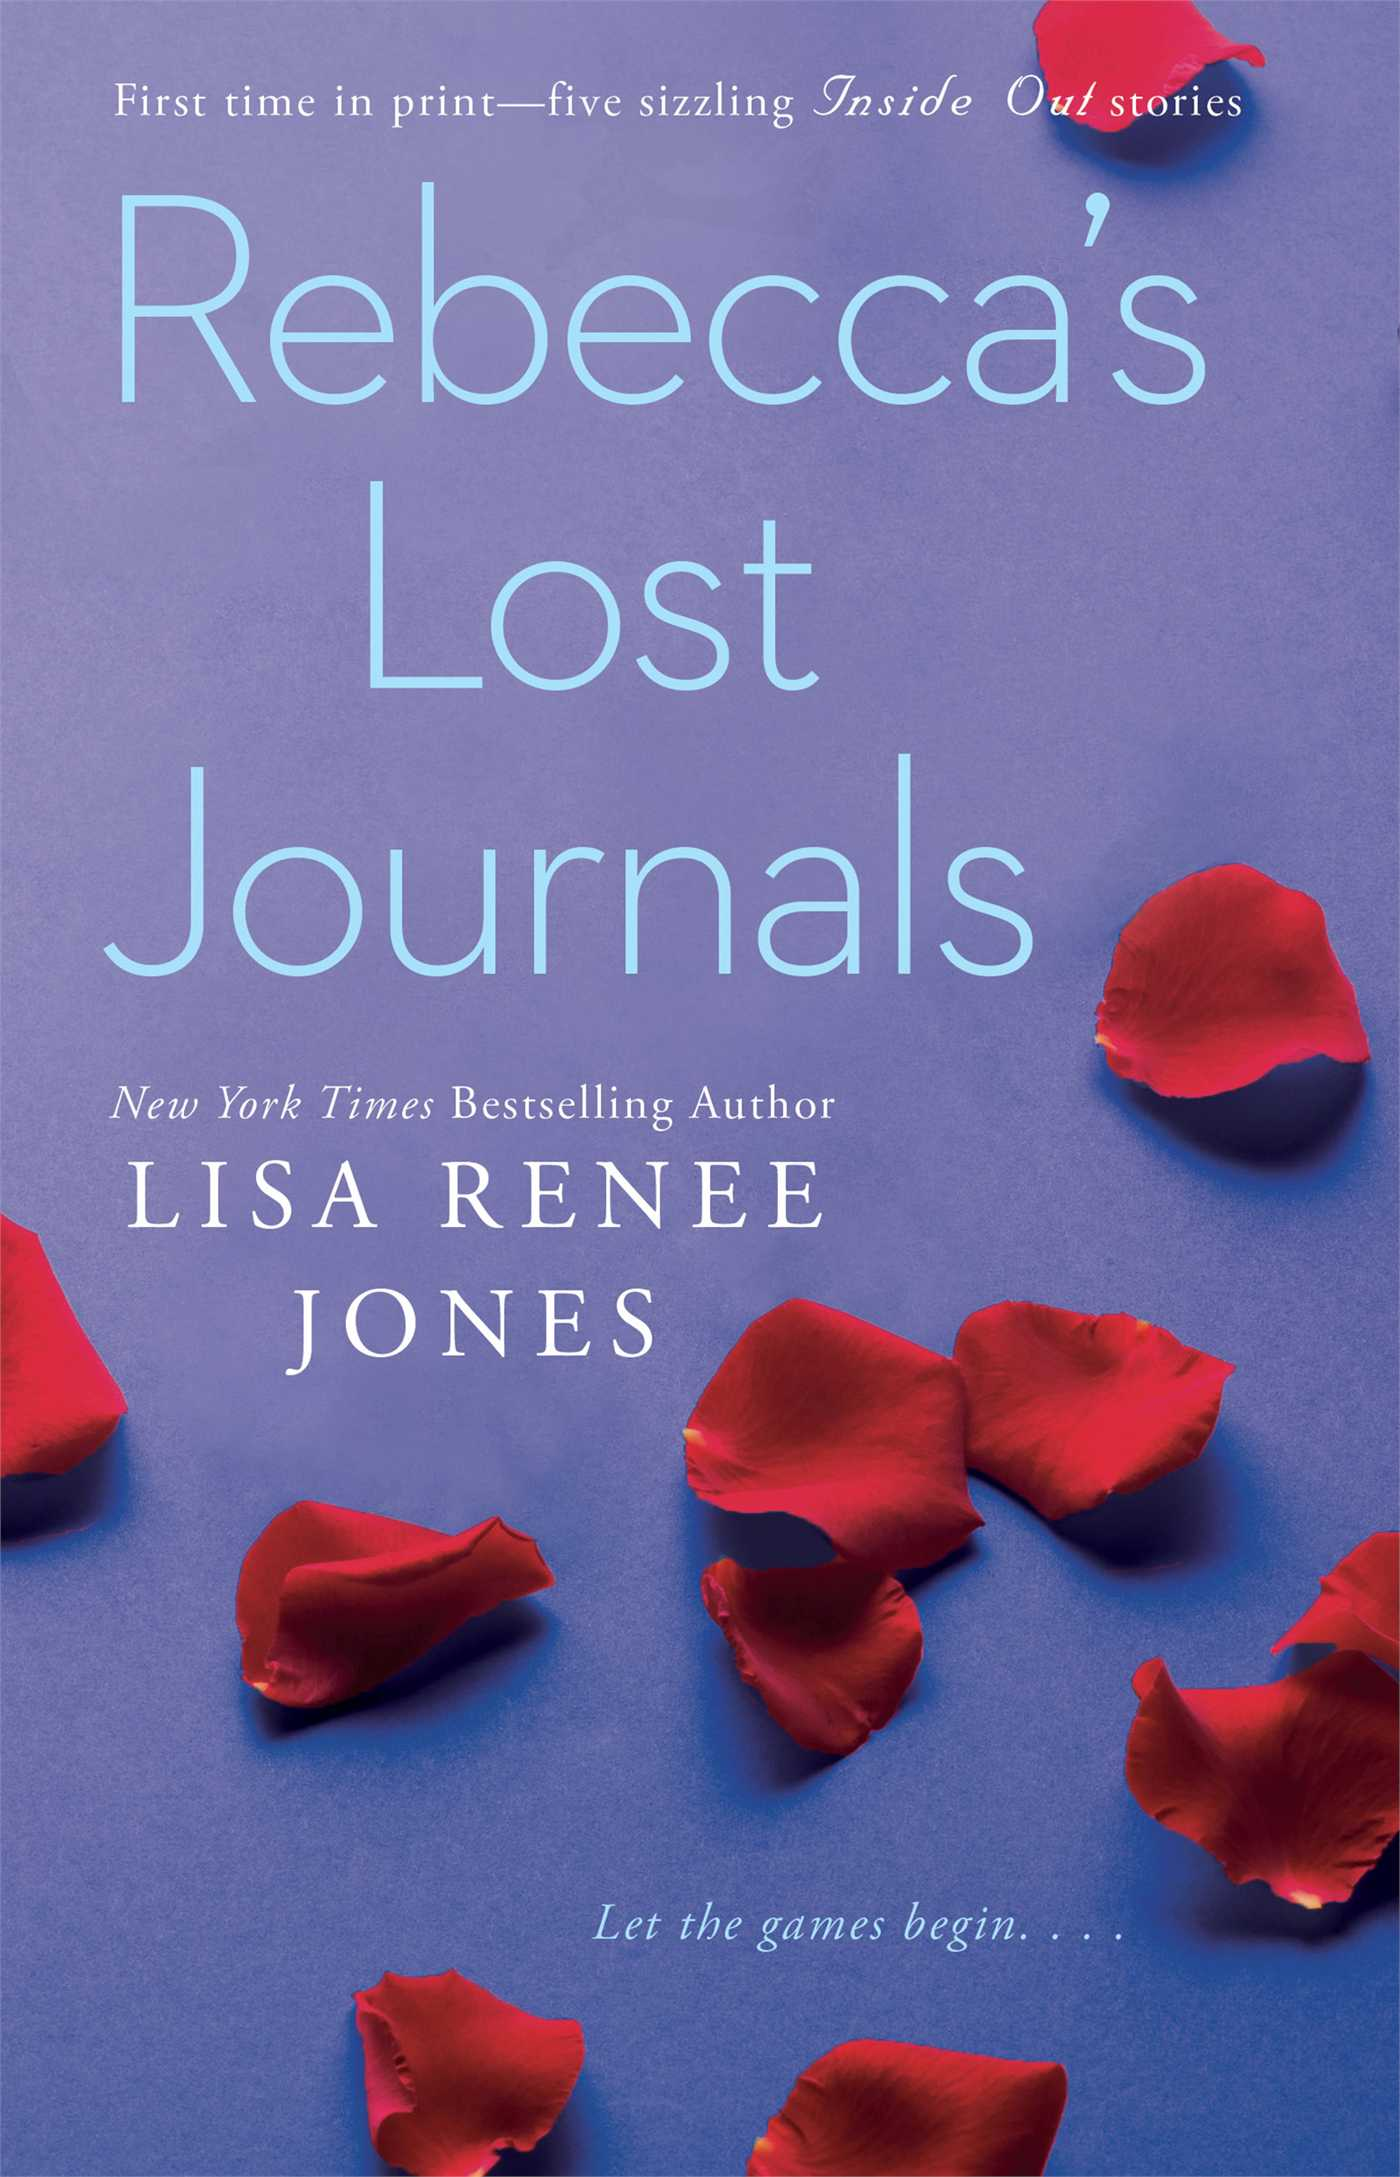 Rebeccas lost journals 9781476772103 hr